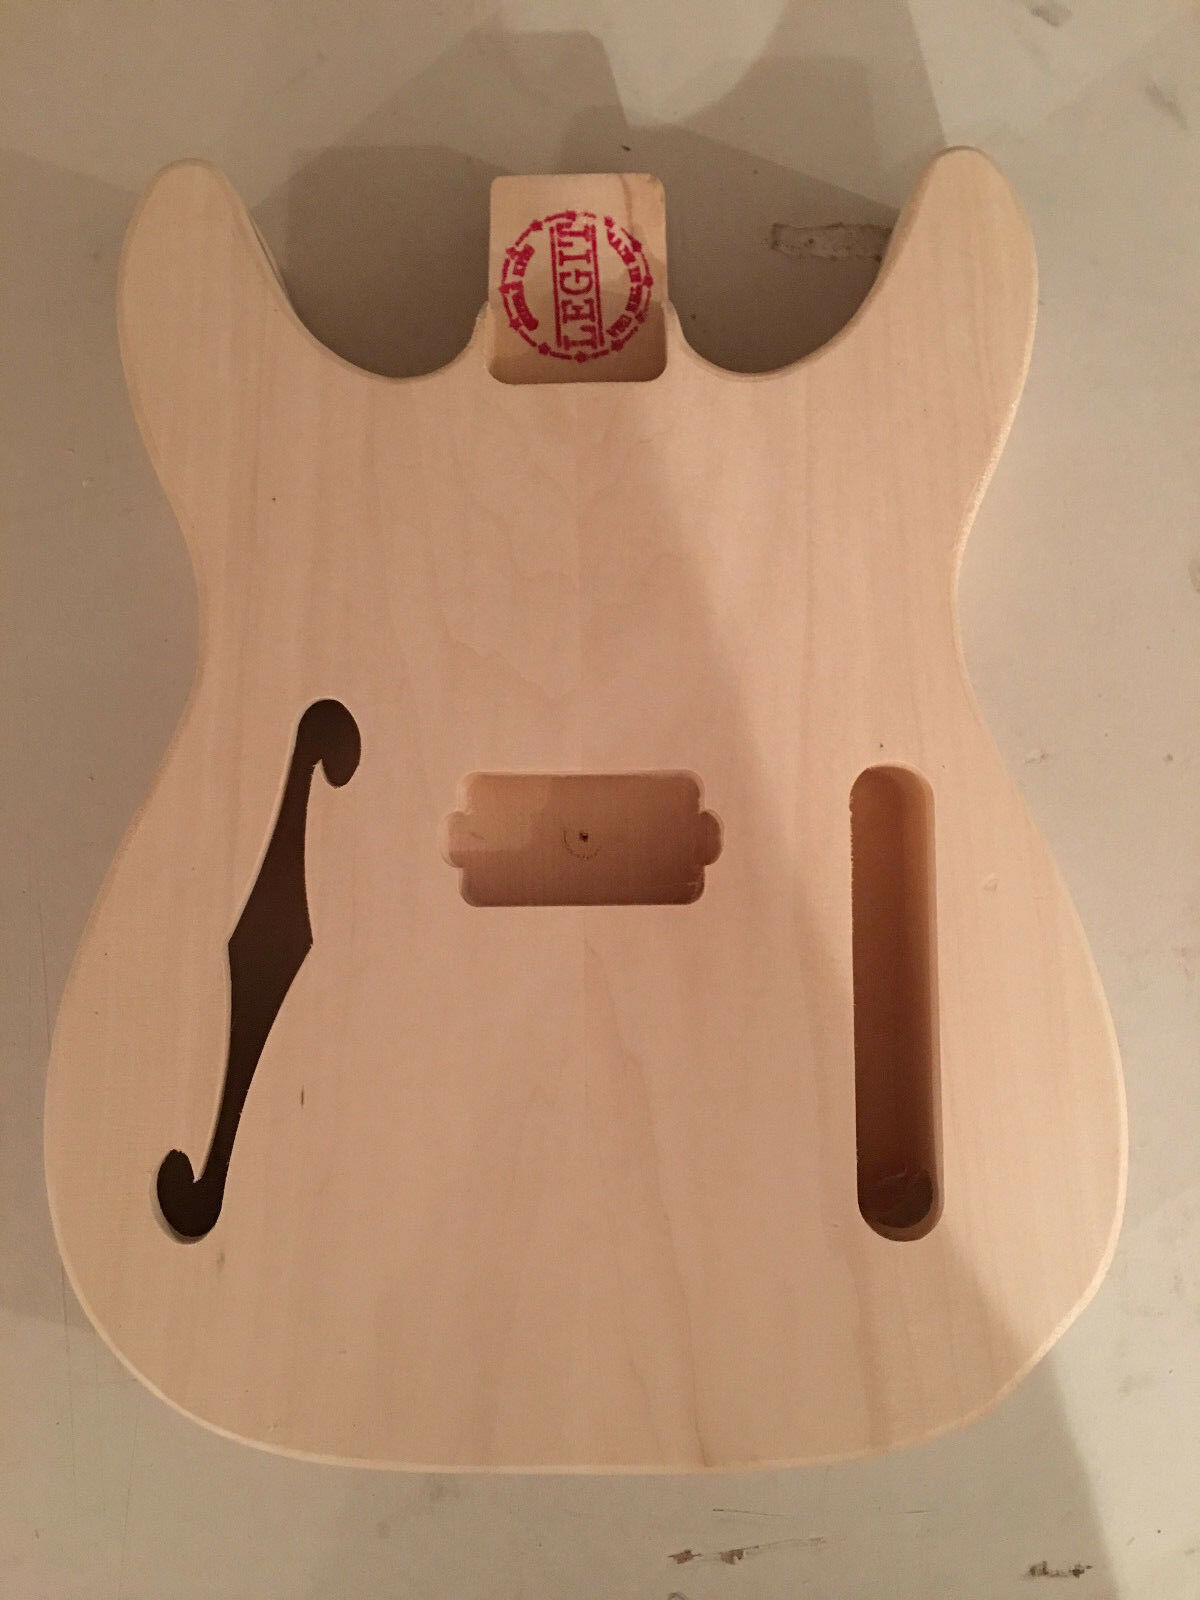 TELE DOUBLE CUT THINLINE STYLE BODY EUROPEAN LINDIN WOOD LIGHT WEIGHT  USA MADE